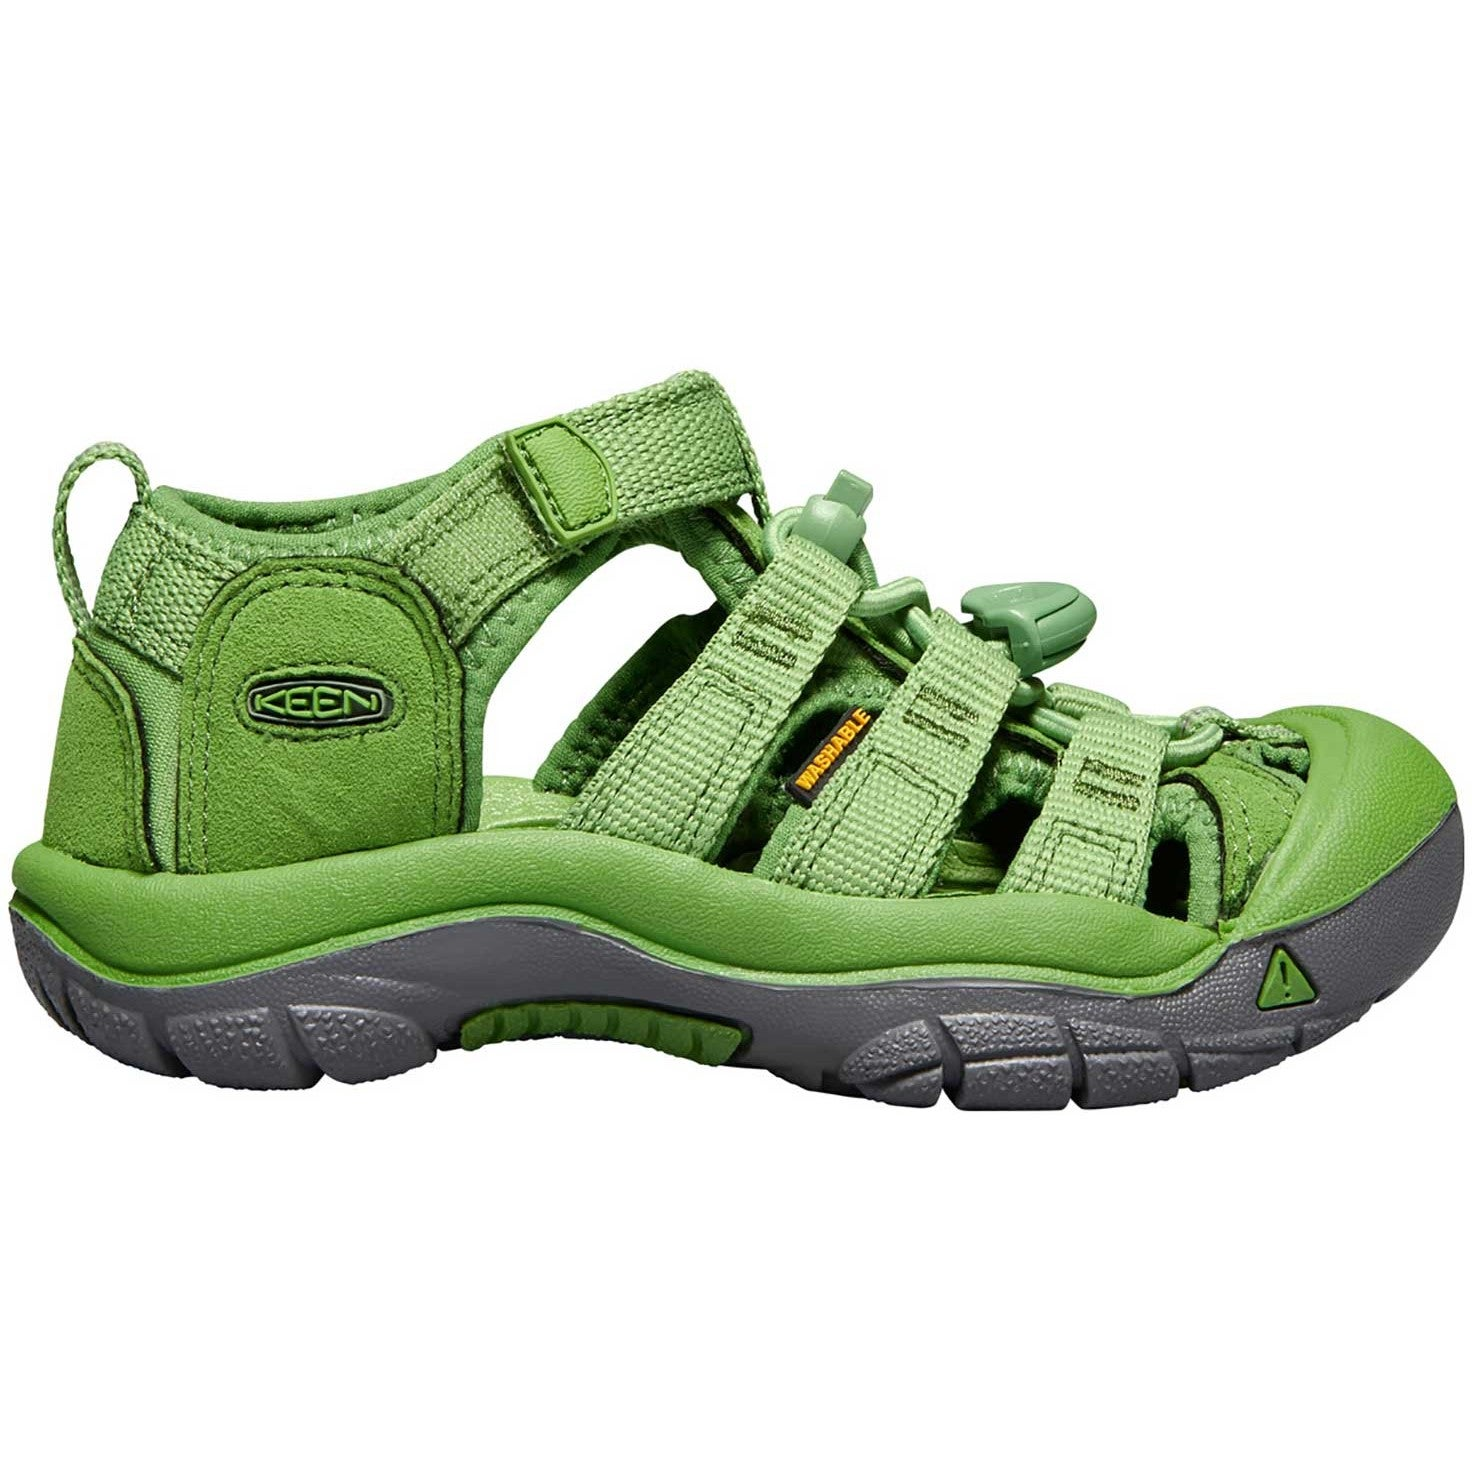 be4357656 Keen Newport H2 Childrens Sandals from Fitness Footwear